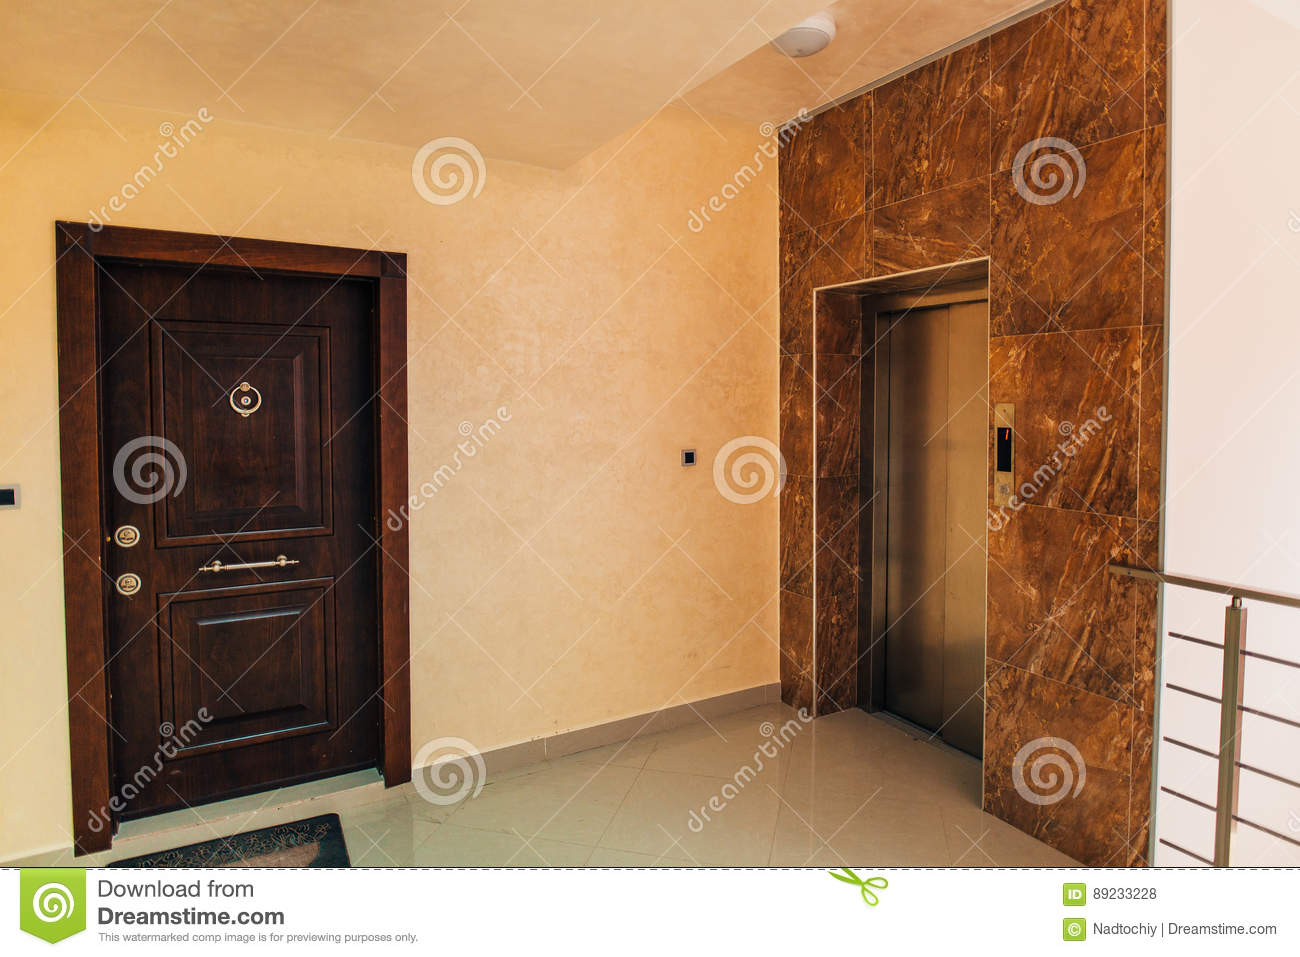 The Front Door To The Apartment. Stock Photo - Image of ...